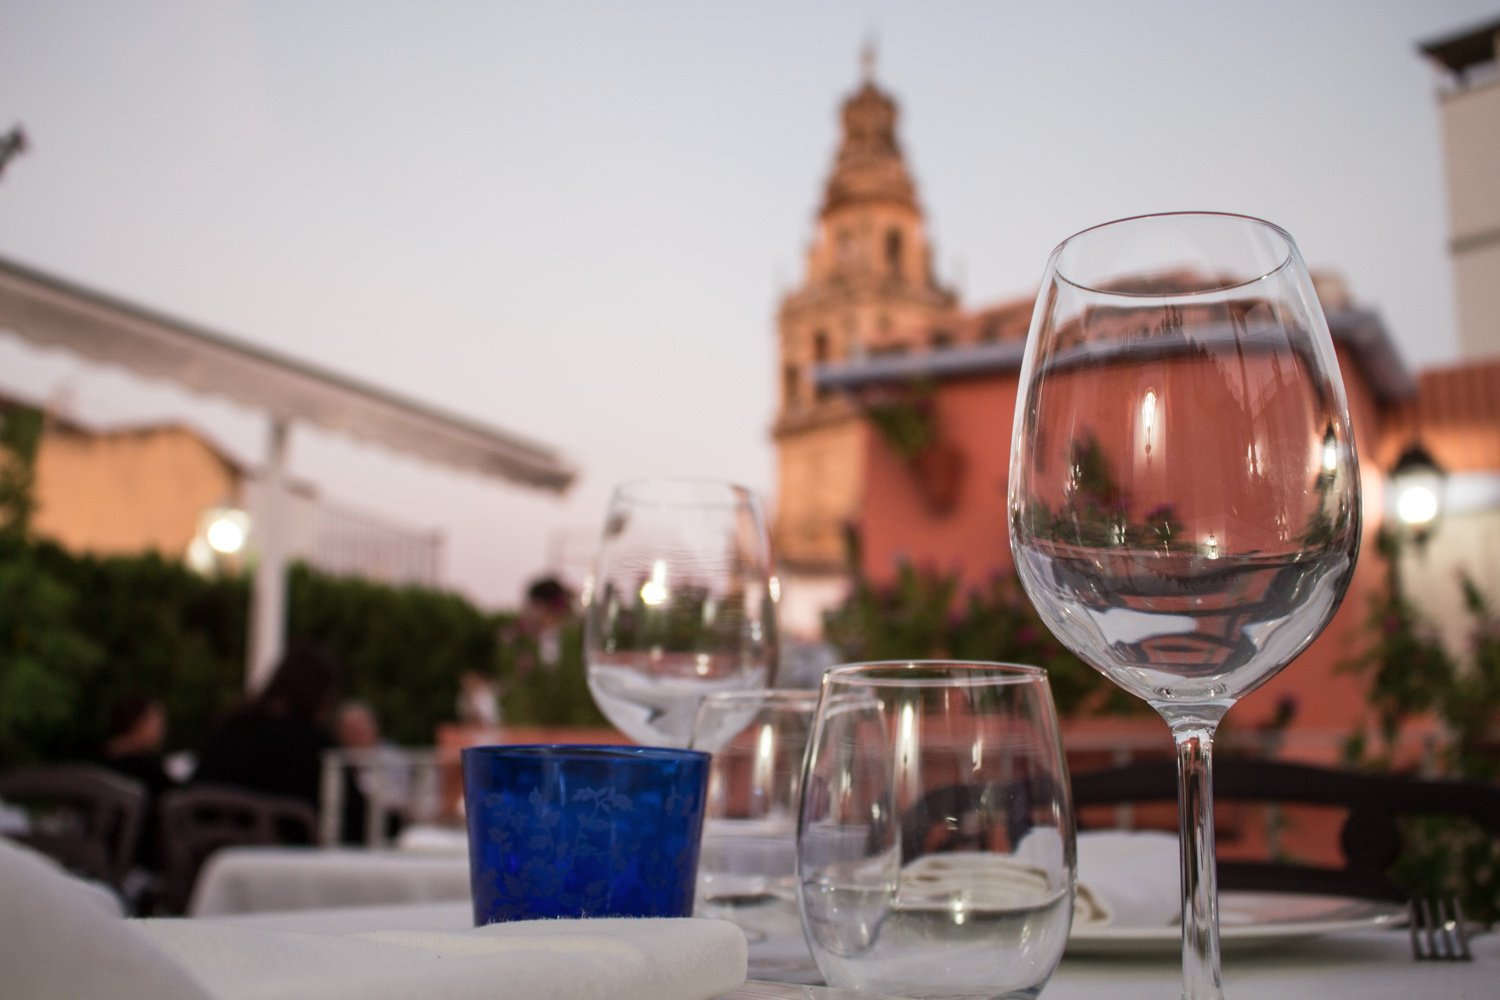 Authentic places to stay near the Mezquita of Córdoba - experience the city like a local